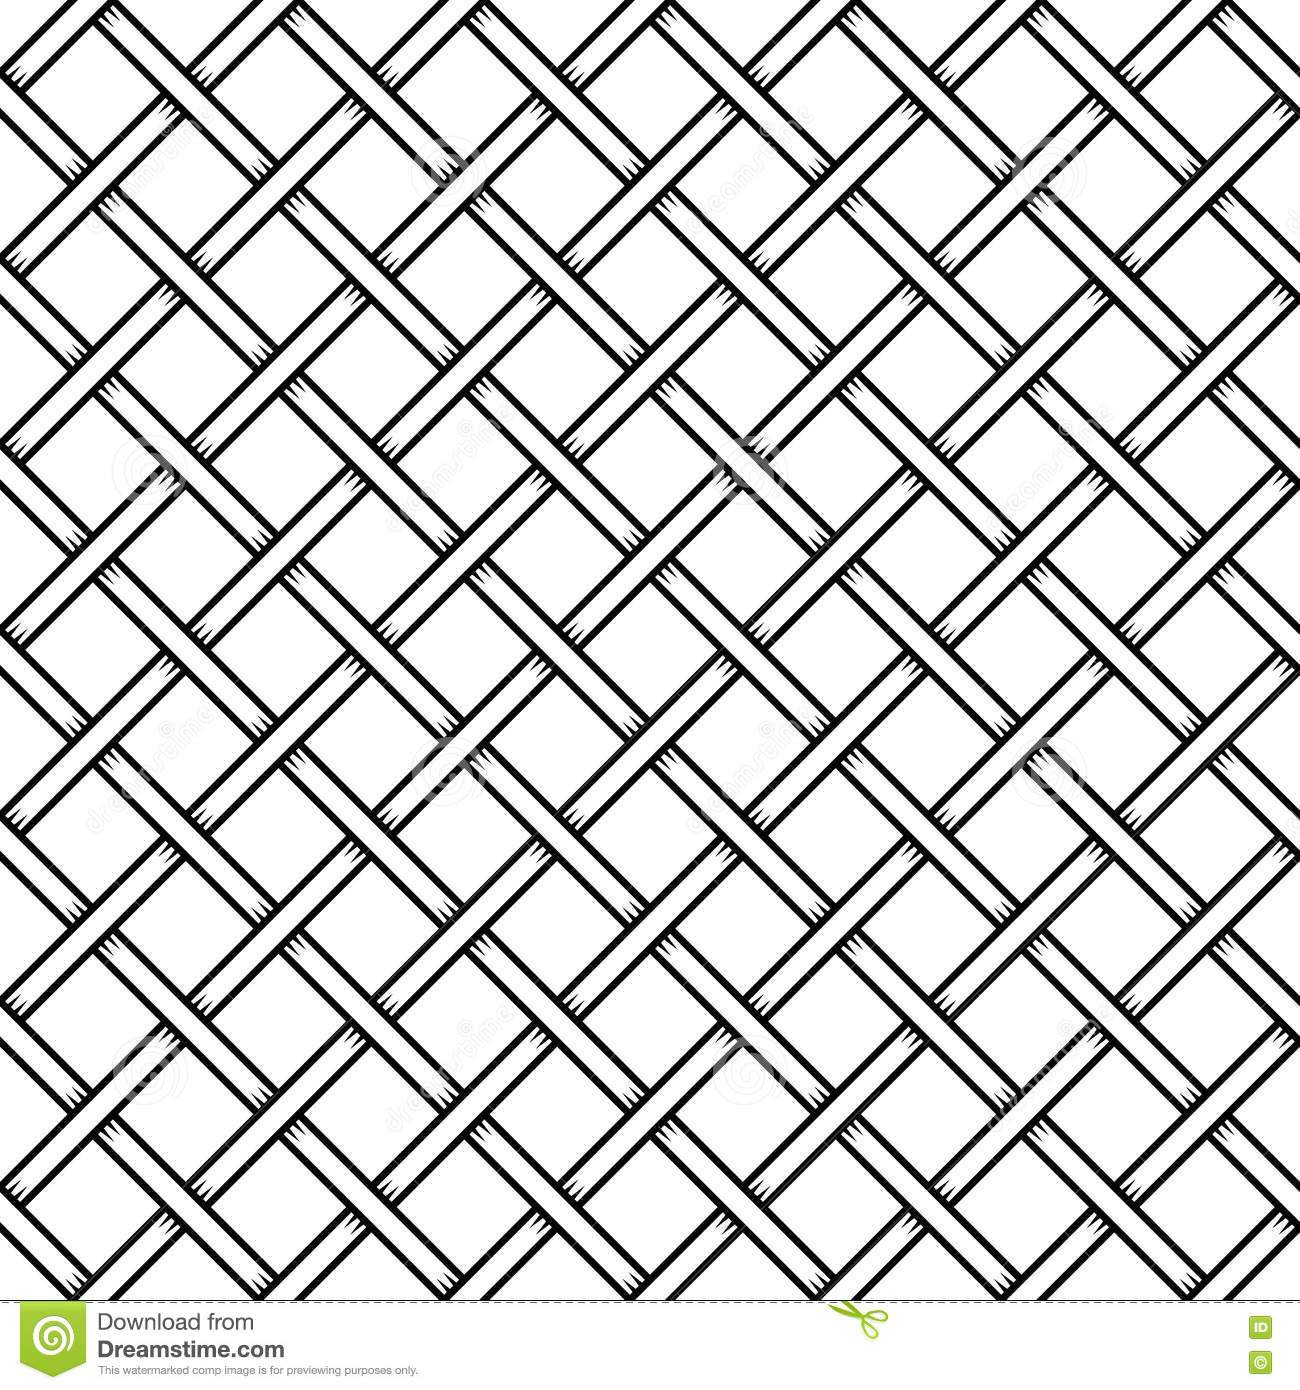 Seamless Cage Texture. Wire Mesh. Vector Illustration 65349934 ...